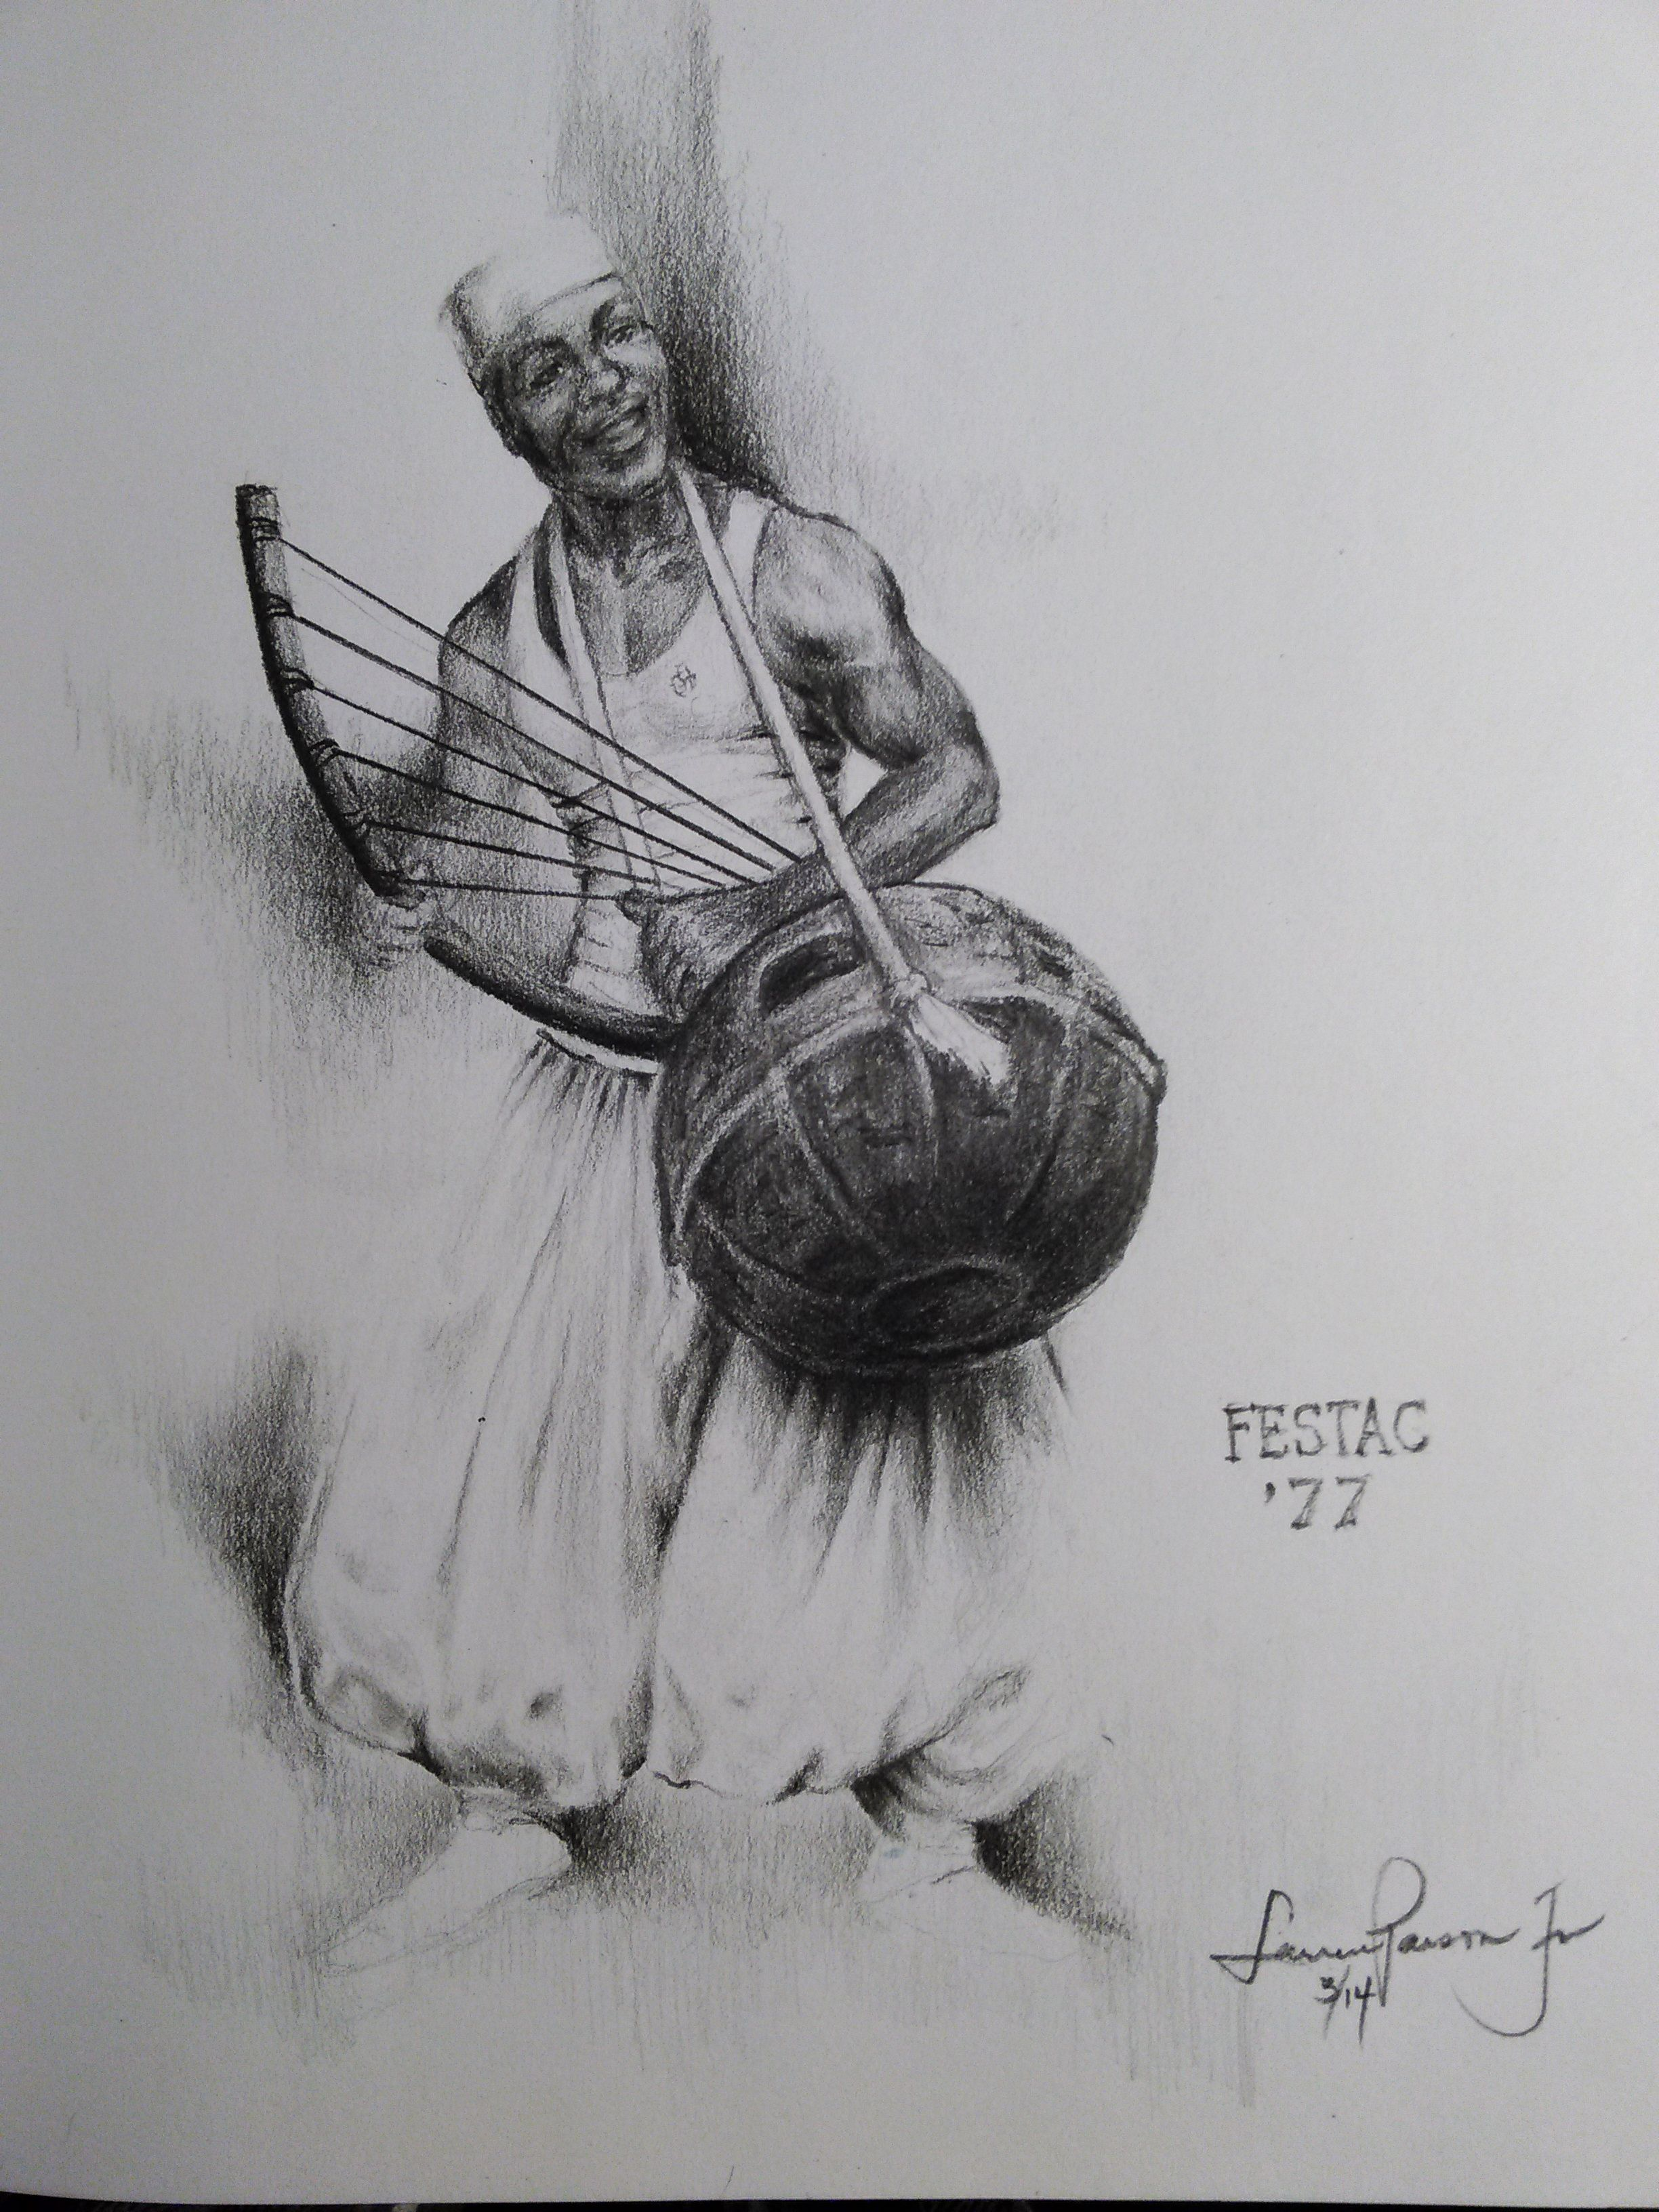 Pencil drawings · jr · festac 77 the festival features poetry sculpture painting music cinema